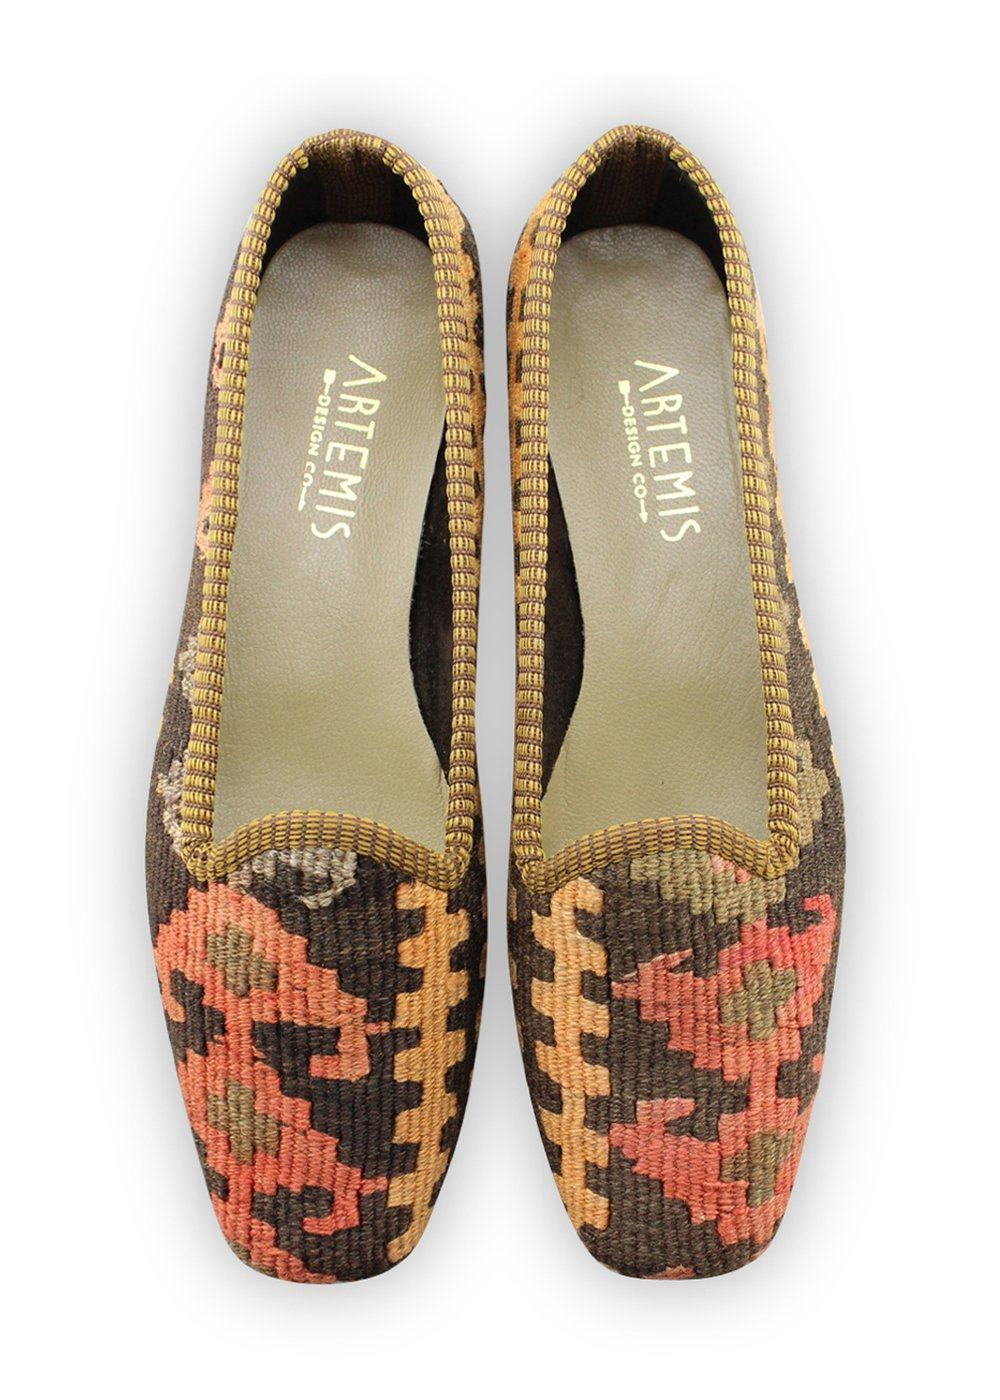 Women's Shoes - Women's Kilim Loafers - Size 41